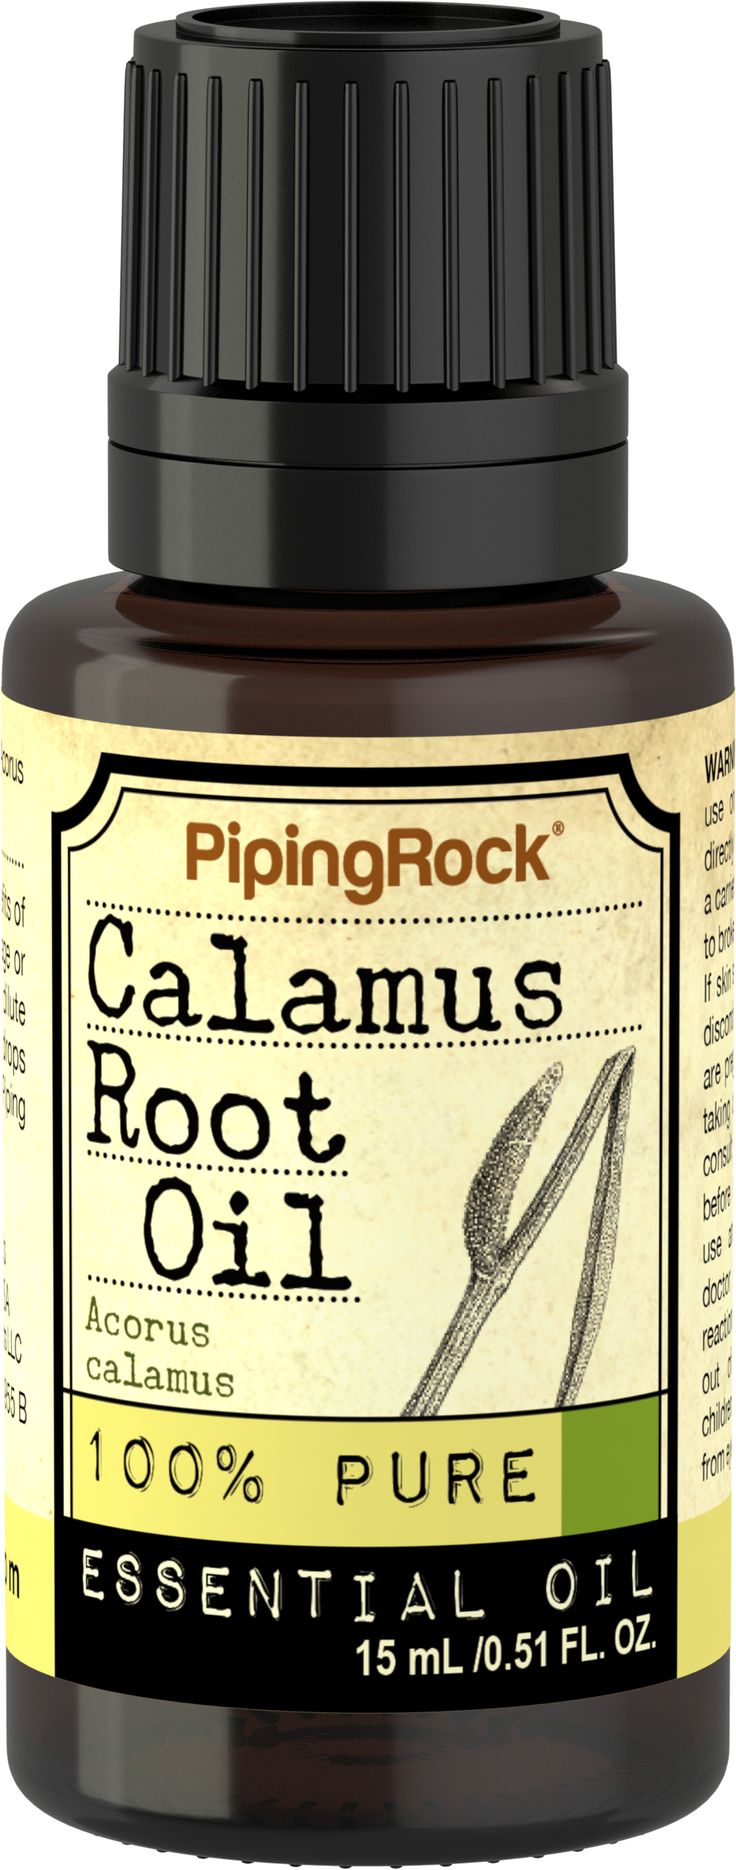 Calamus Root Benzoin 100% Pure Essential Oil | Piping Rock Health Products